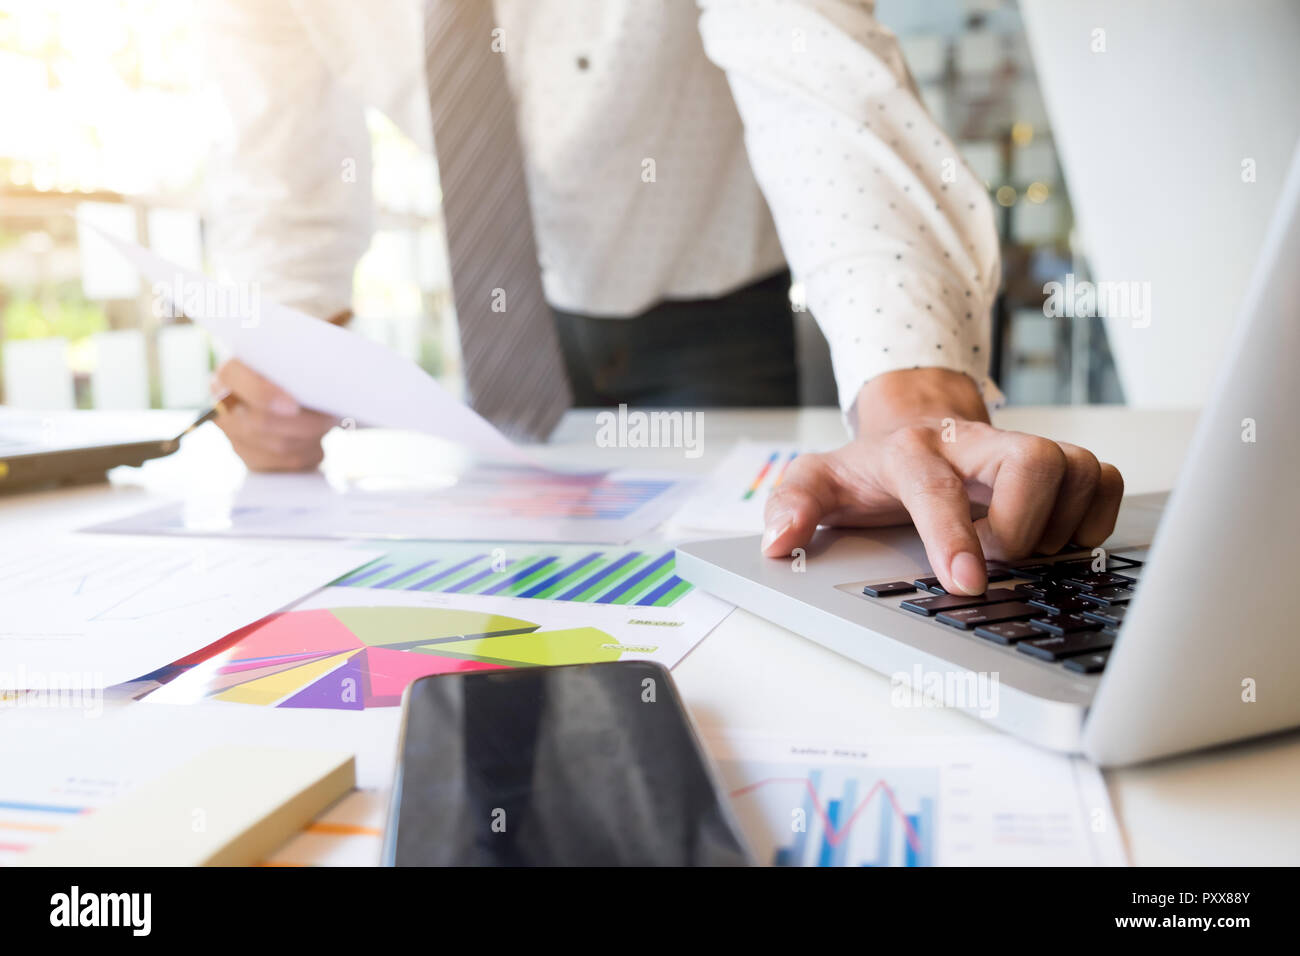 Startup businessman working with business documents on office table with graph financial diagram. Stock Photo